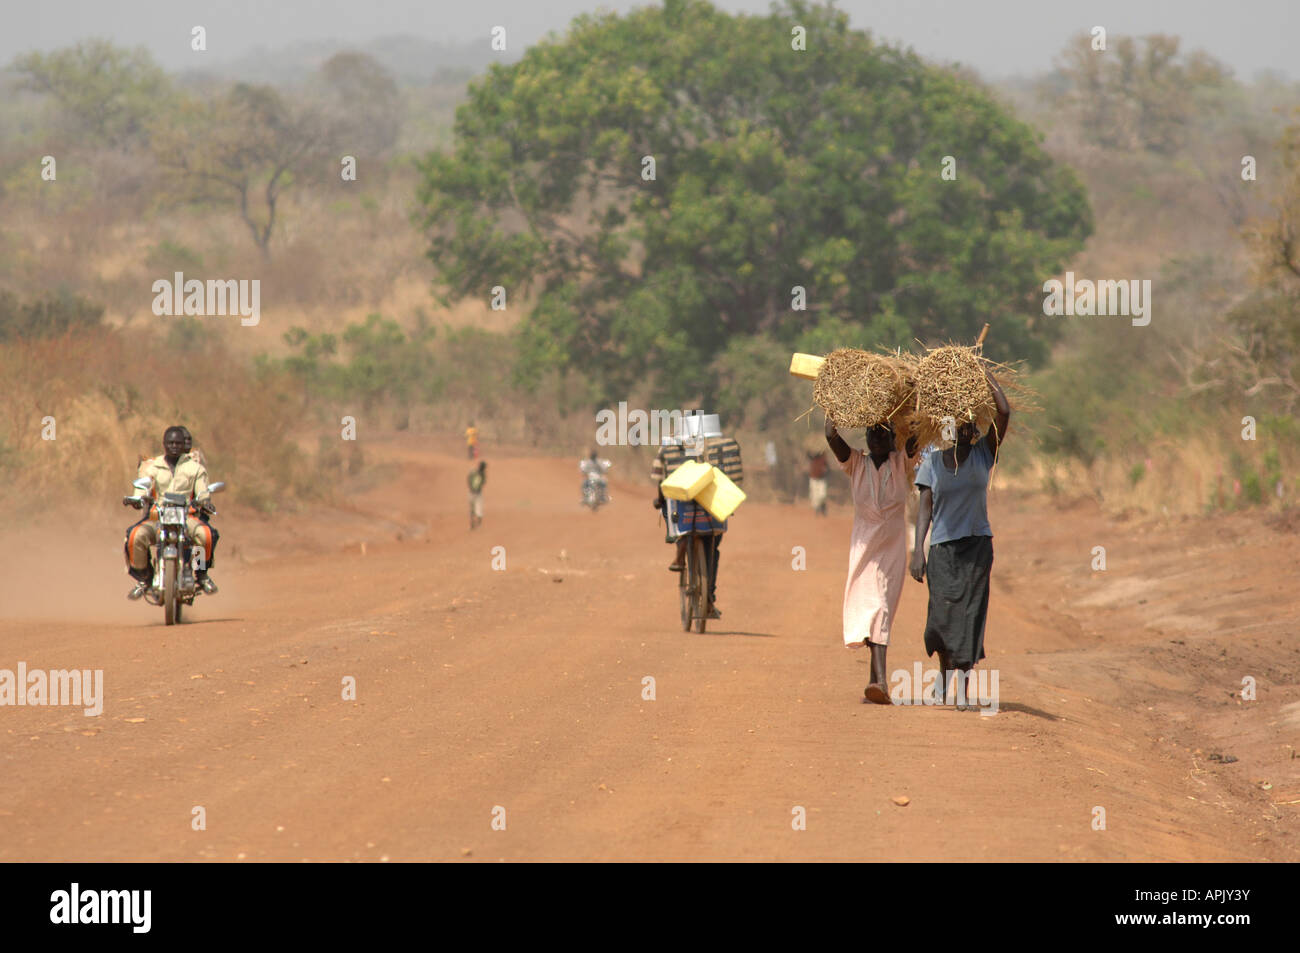 Two women carrying thatching materials on a dusty road in Southern Sudan - Stock Image